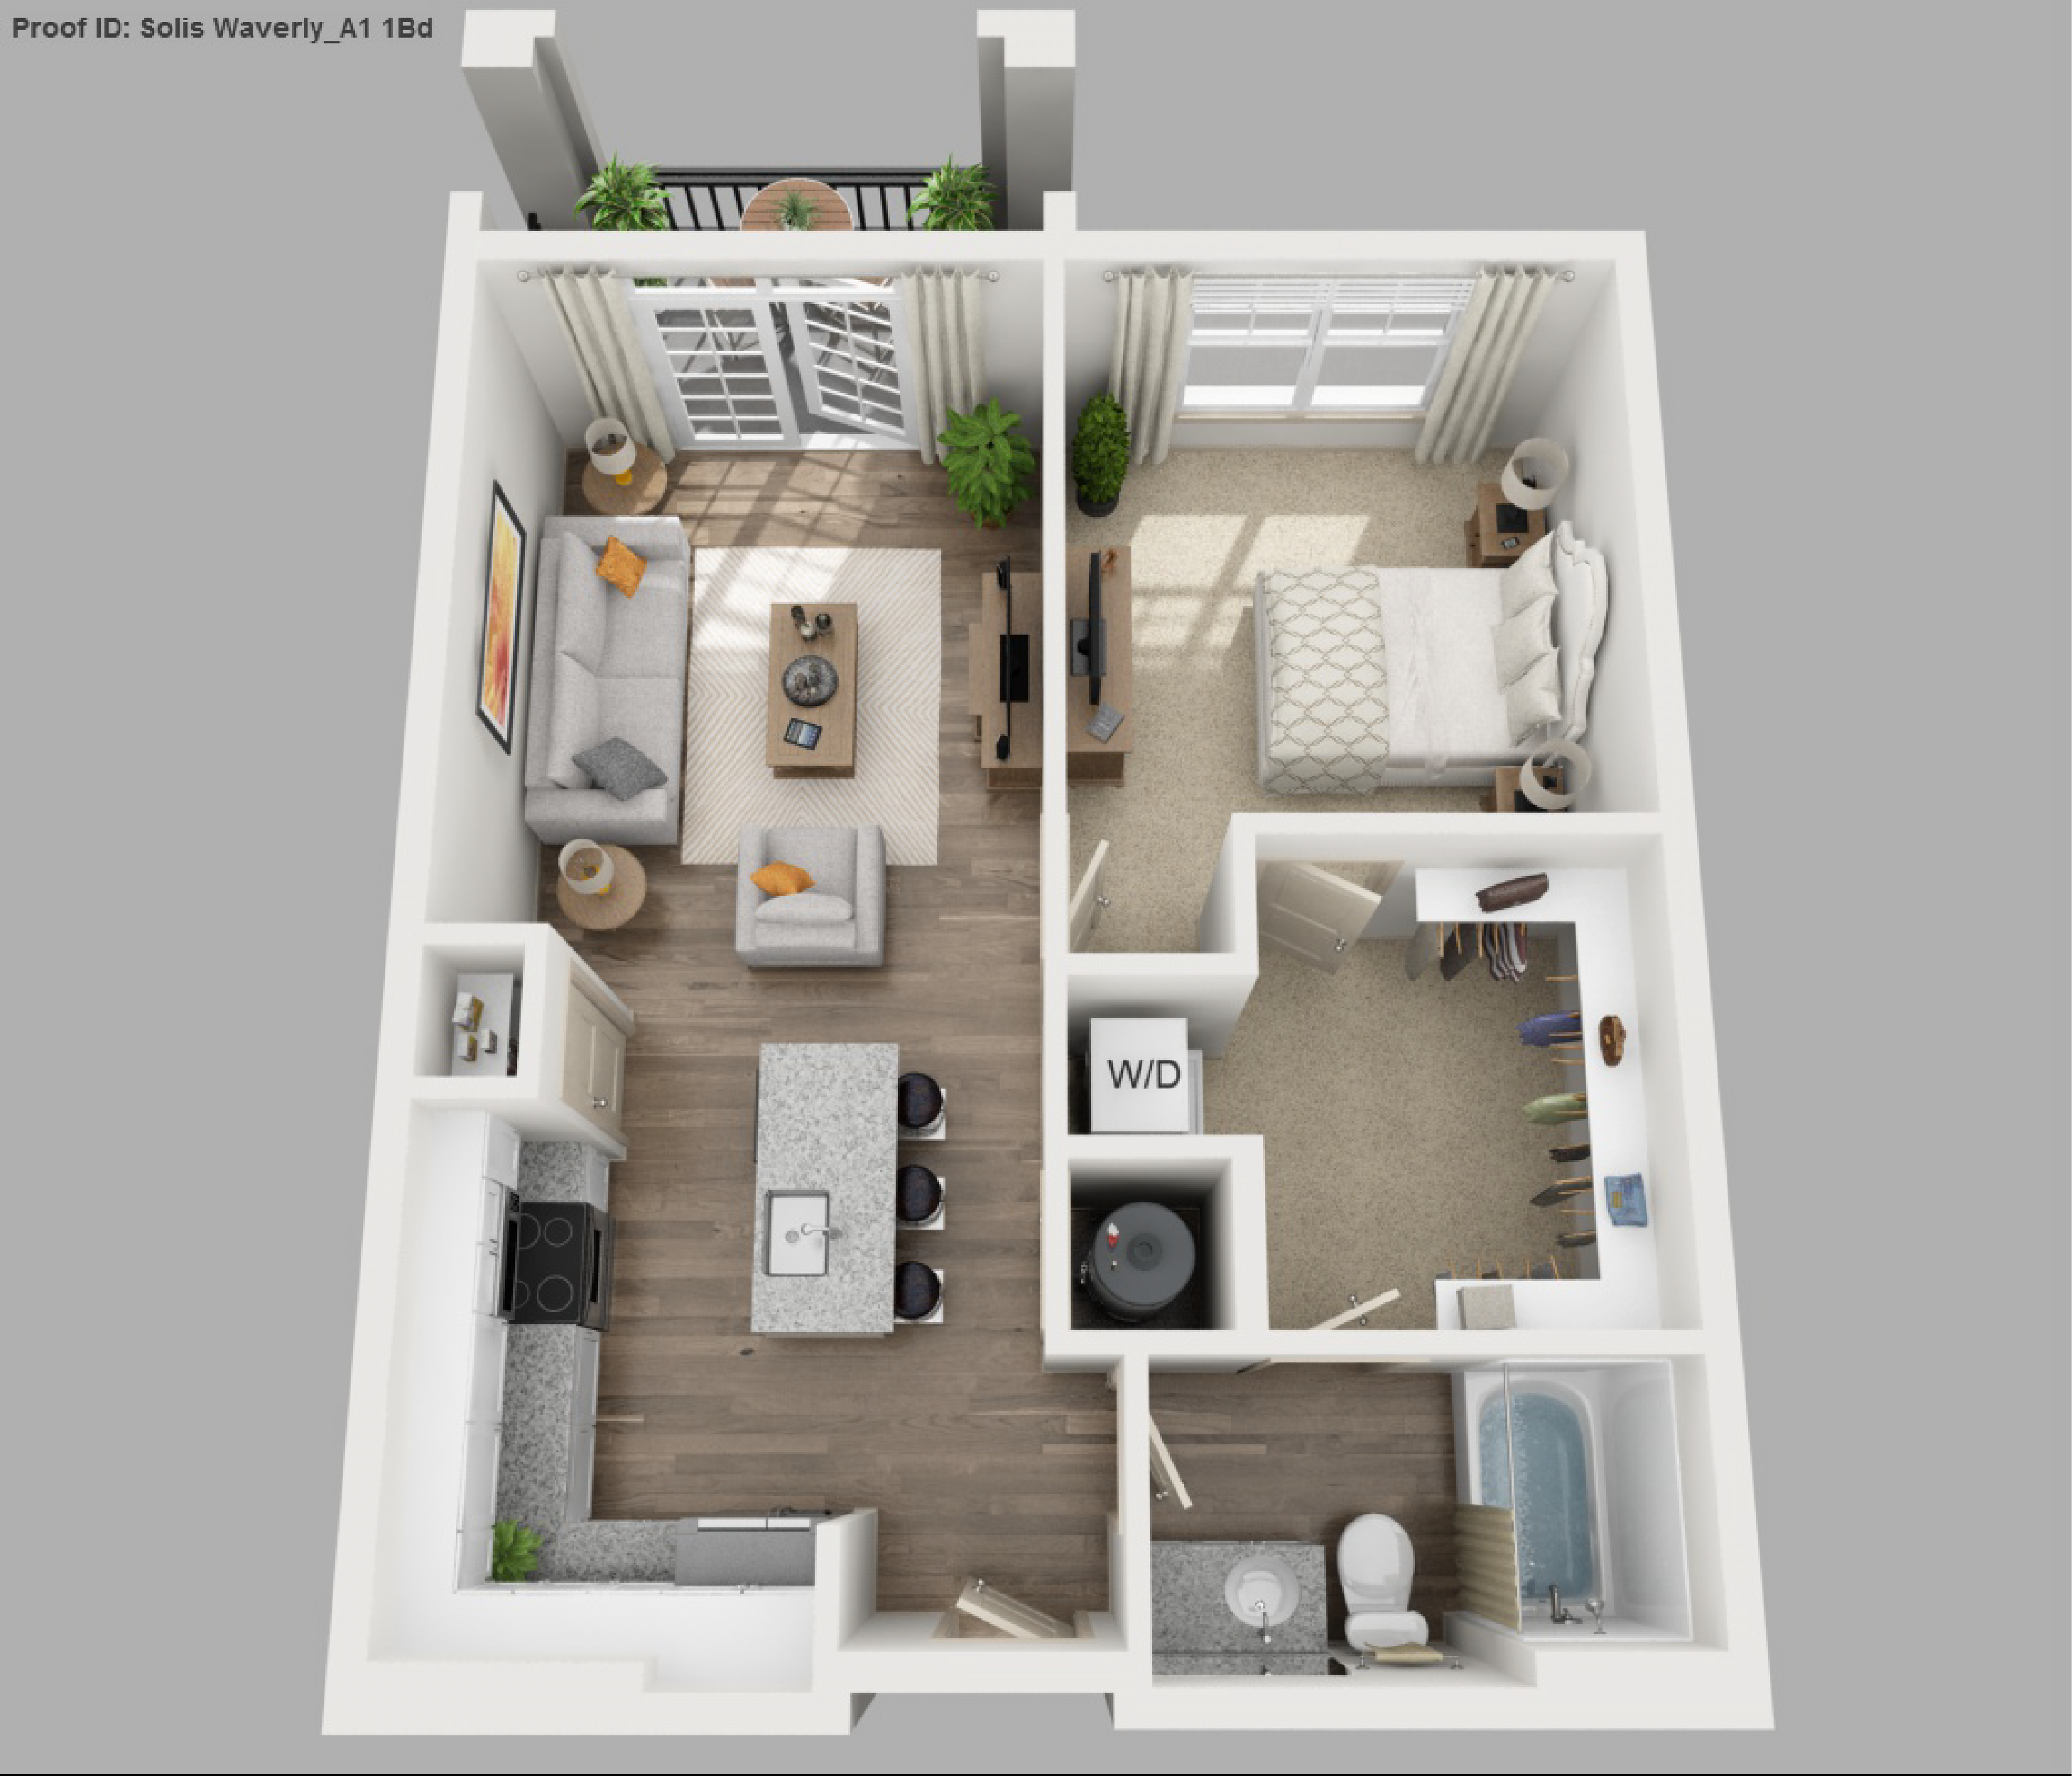 1 bedroom apartt floor plans